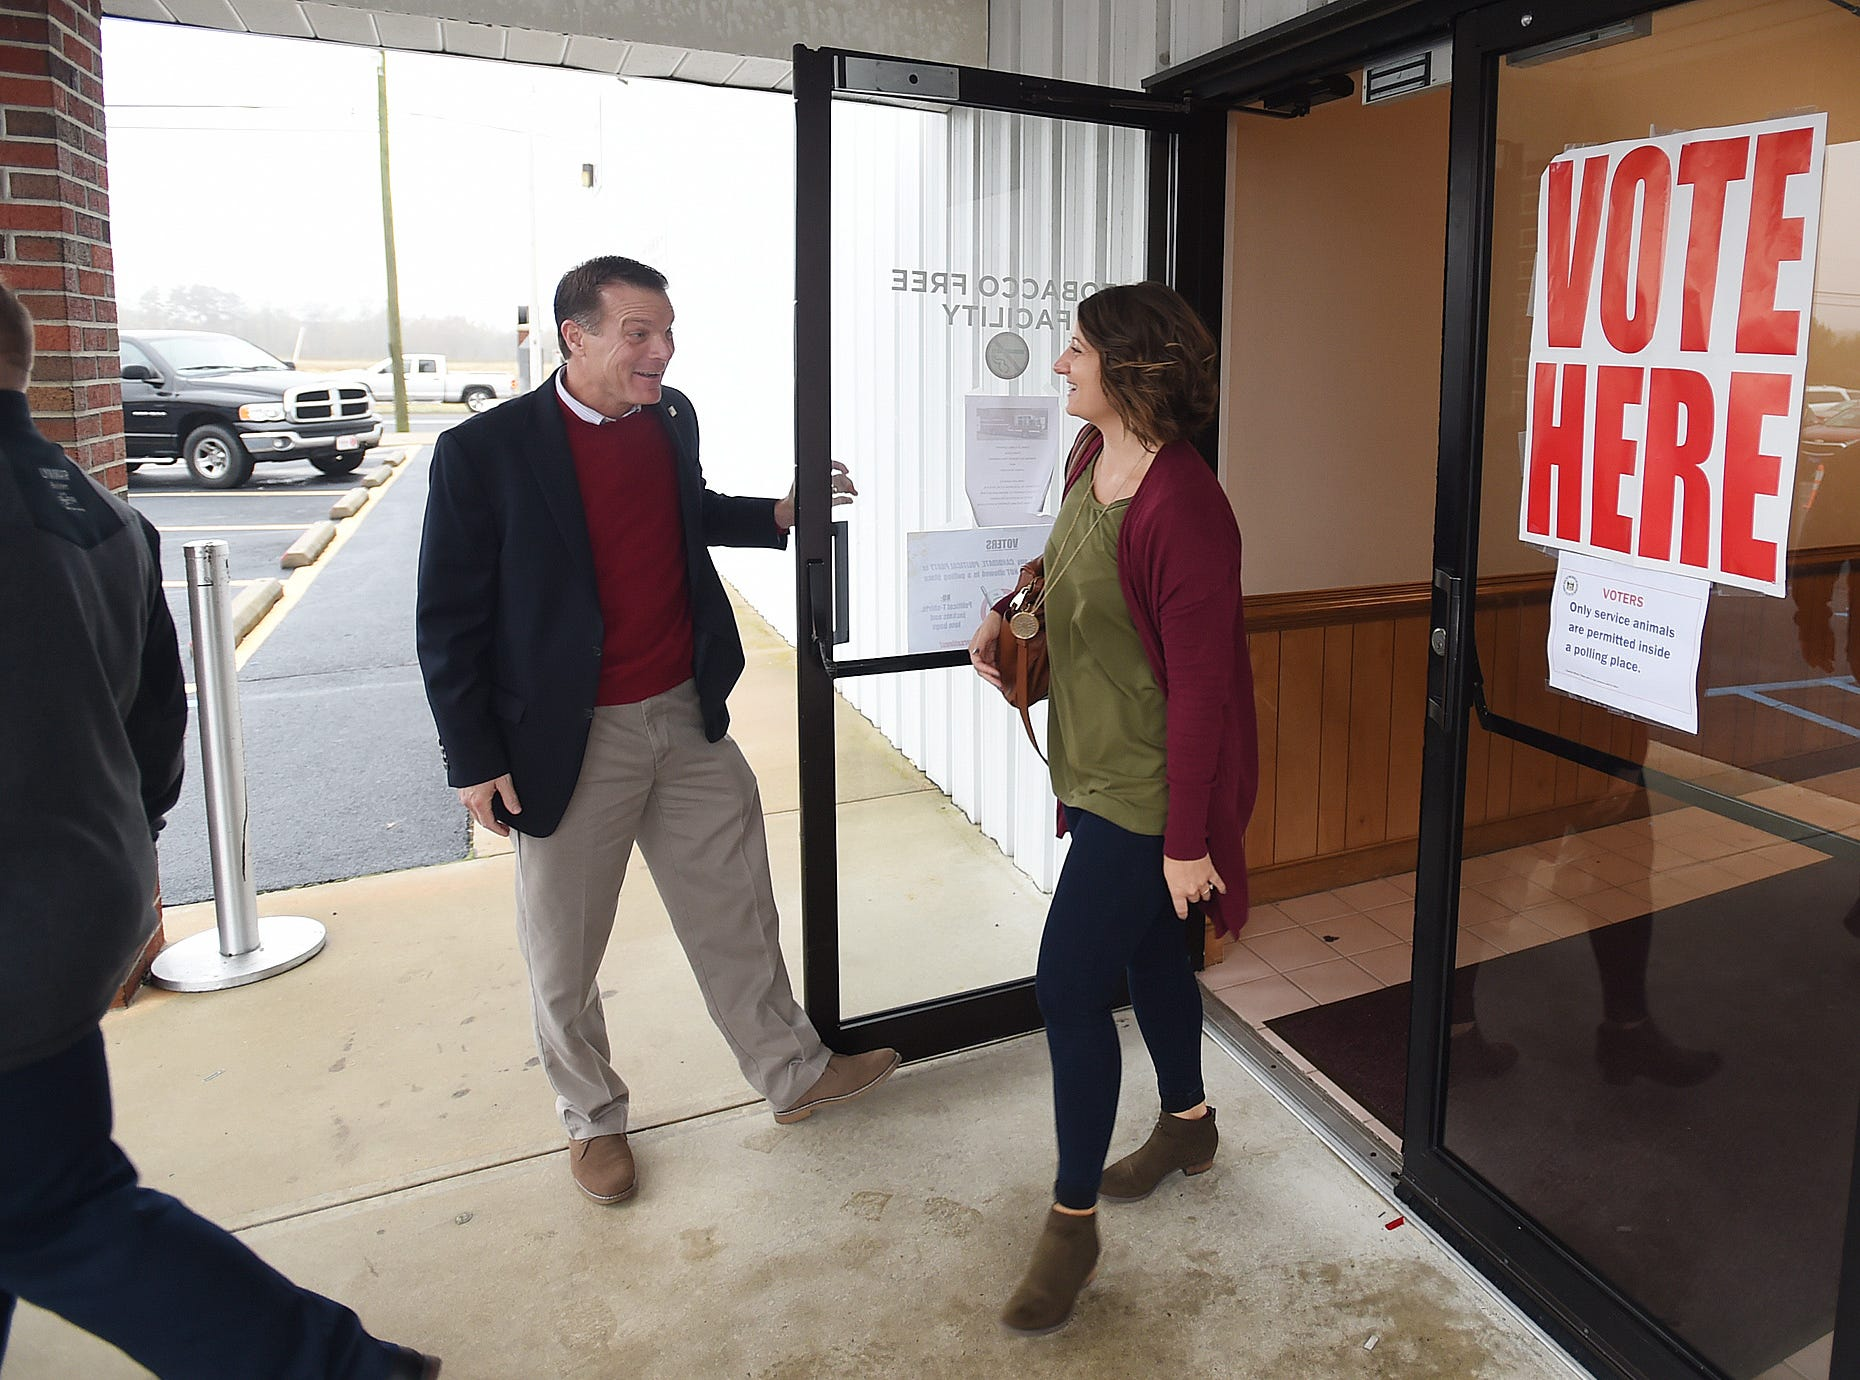 U.S. Senate Candidate Rob Arlett holds the door for voters at the Roxana Fire Station as voter turnout in eastern Sussex County has been steady at polling places in Rehoboth, Roxana, and Angola as candidates still greet supporters for their support.